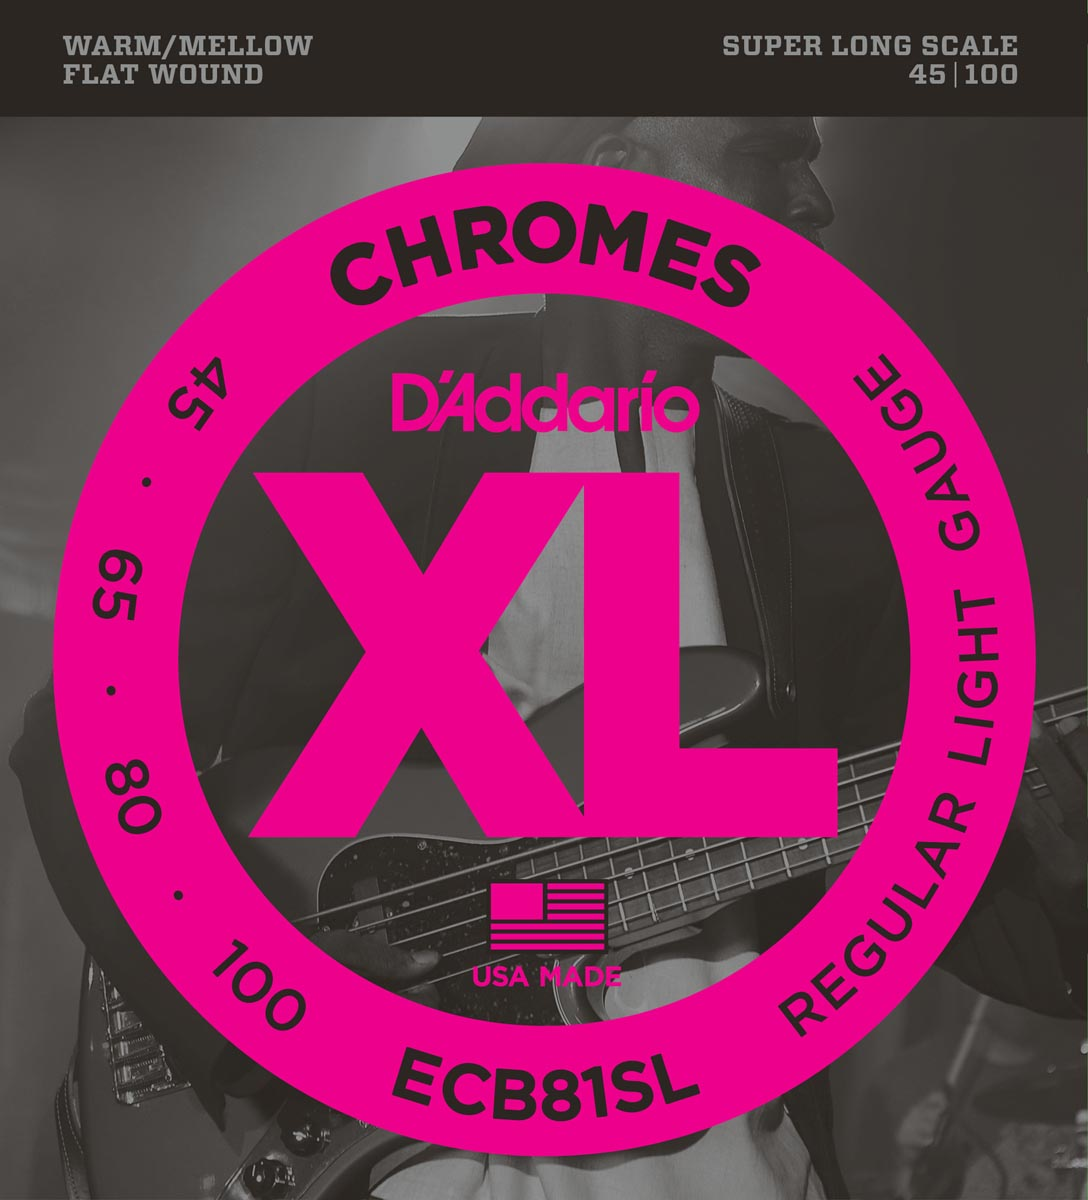 DADDARIO ECB81SL CHROMES LIGHT SUPER LONG SCALE [45-100]